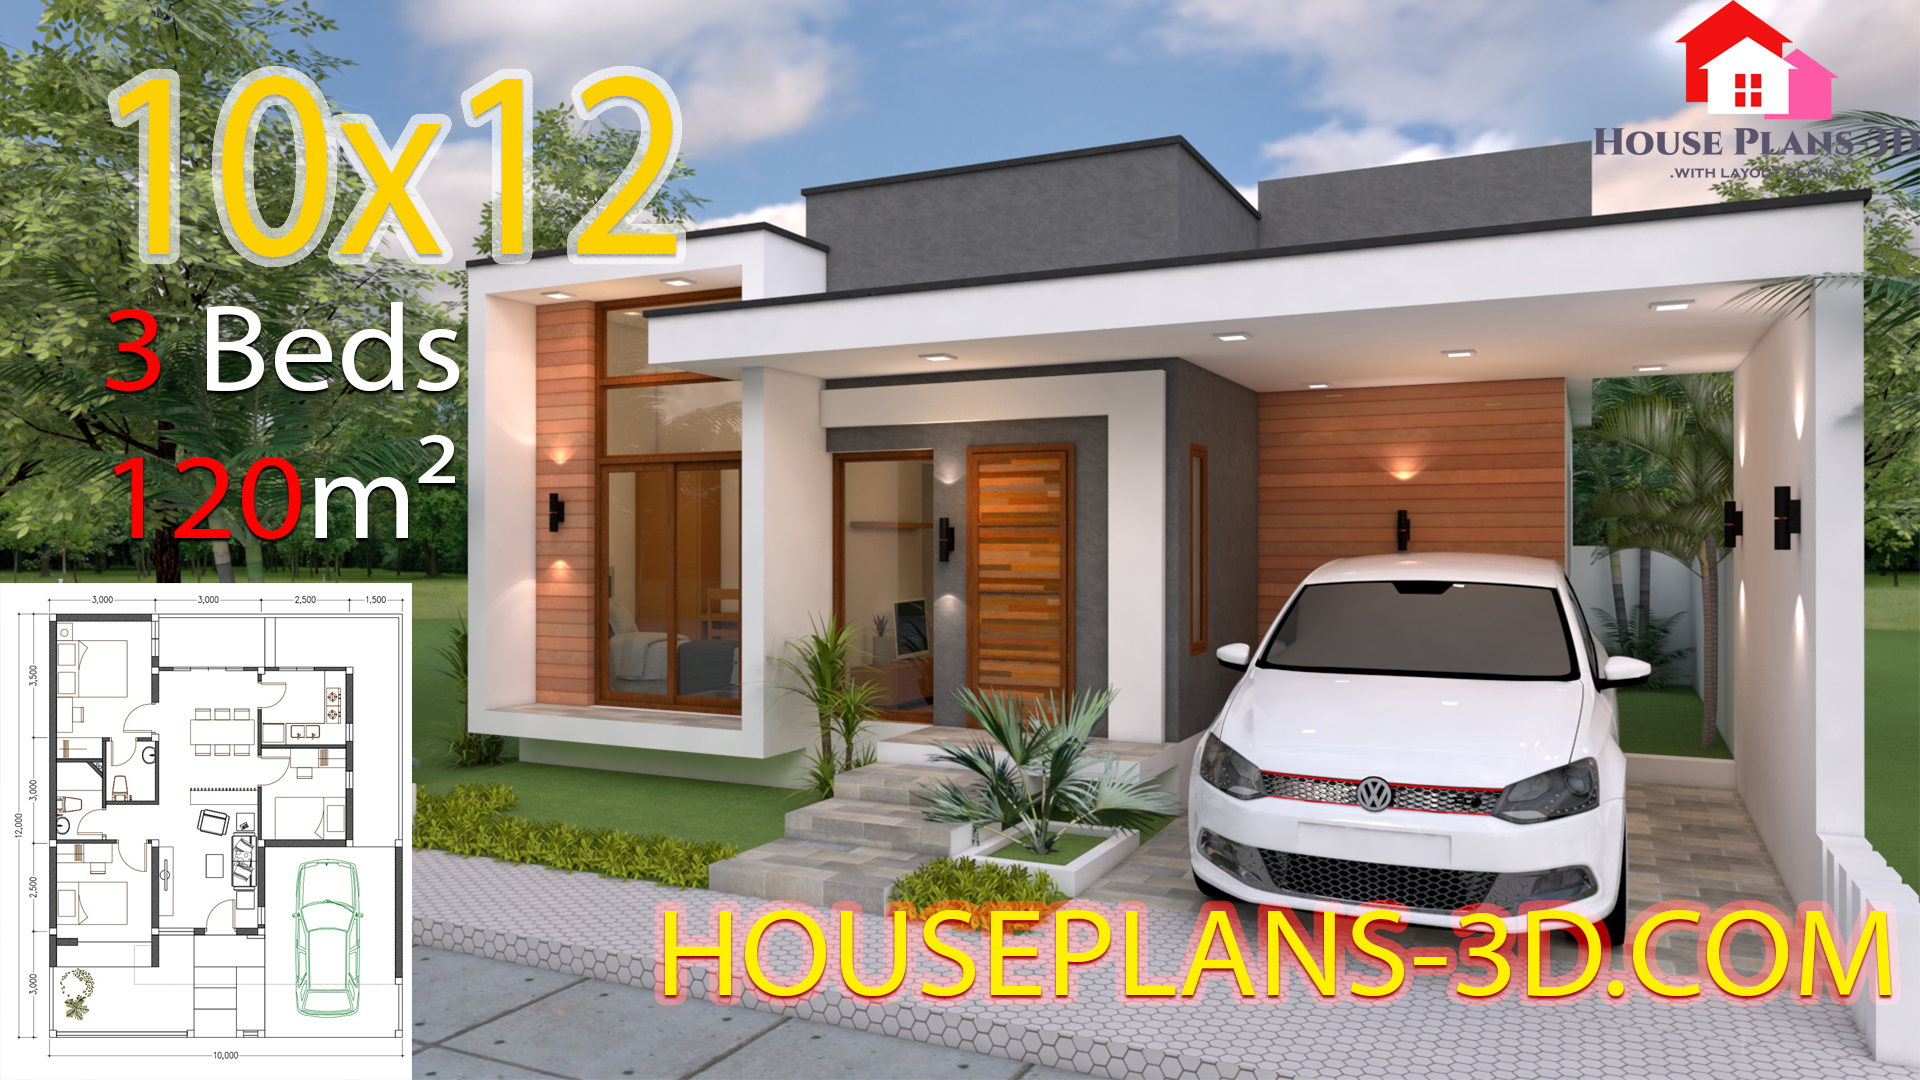 House design 10x12 with 3 Bedrooms Terrace Roof - House Plans 3D